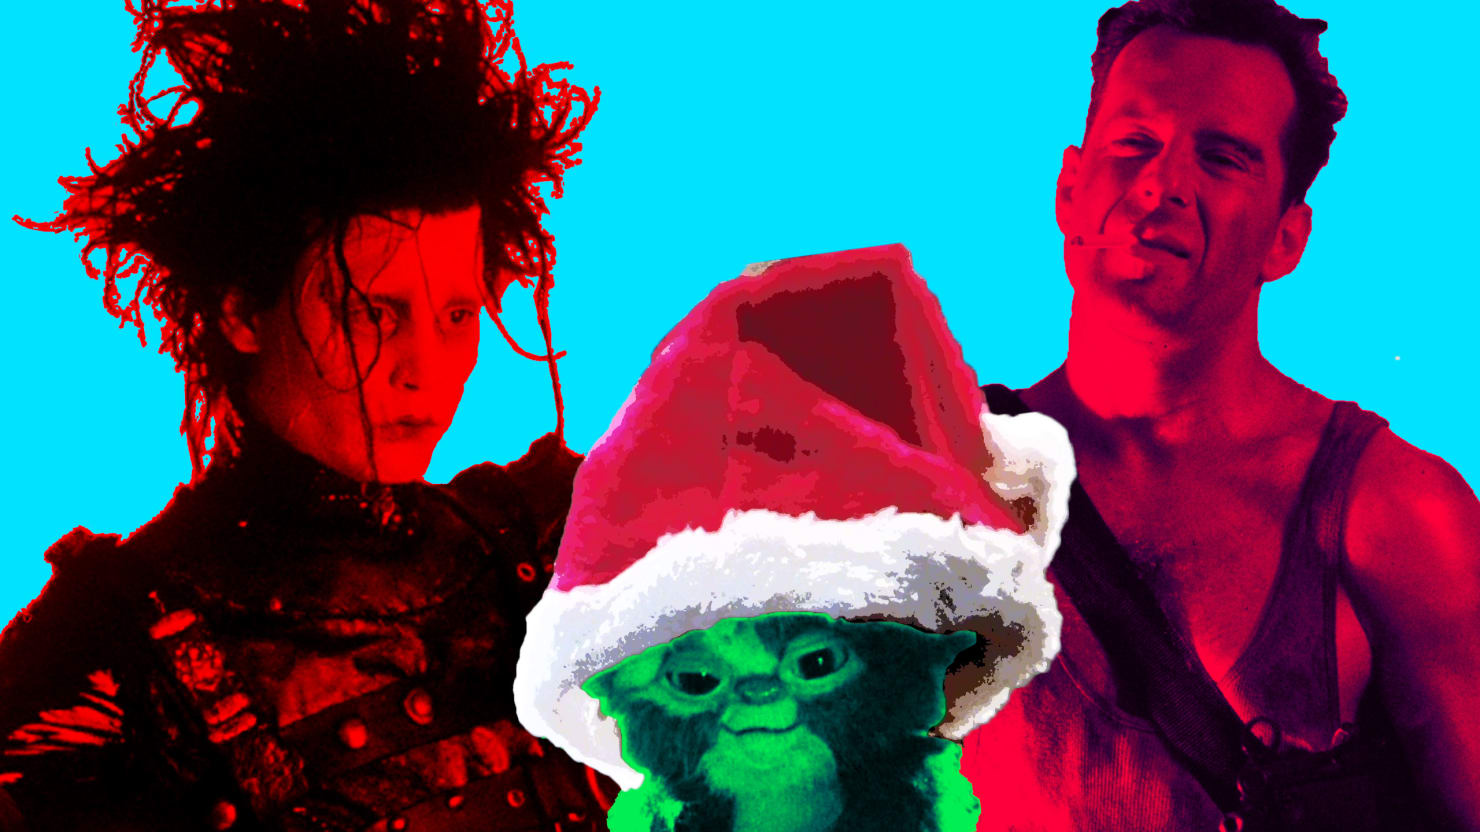 The Best Alternative Christmas Movies: \'Die Hard,\' \'Gremlins,\' and More